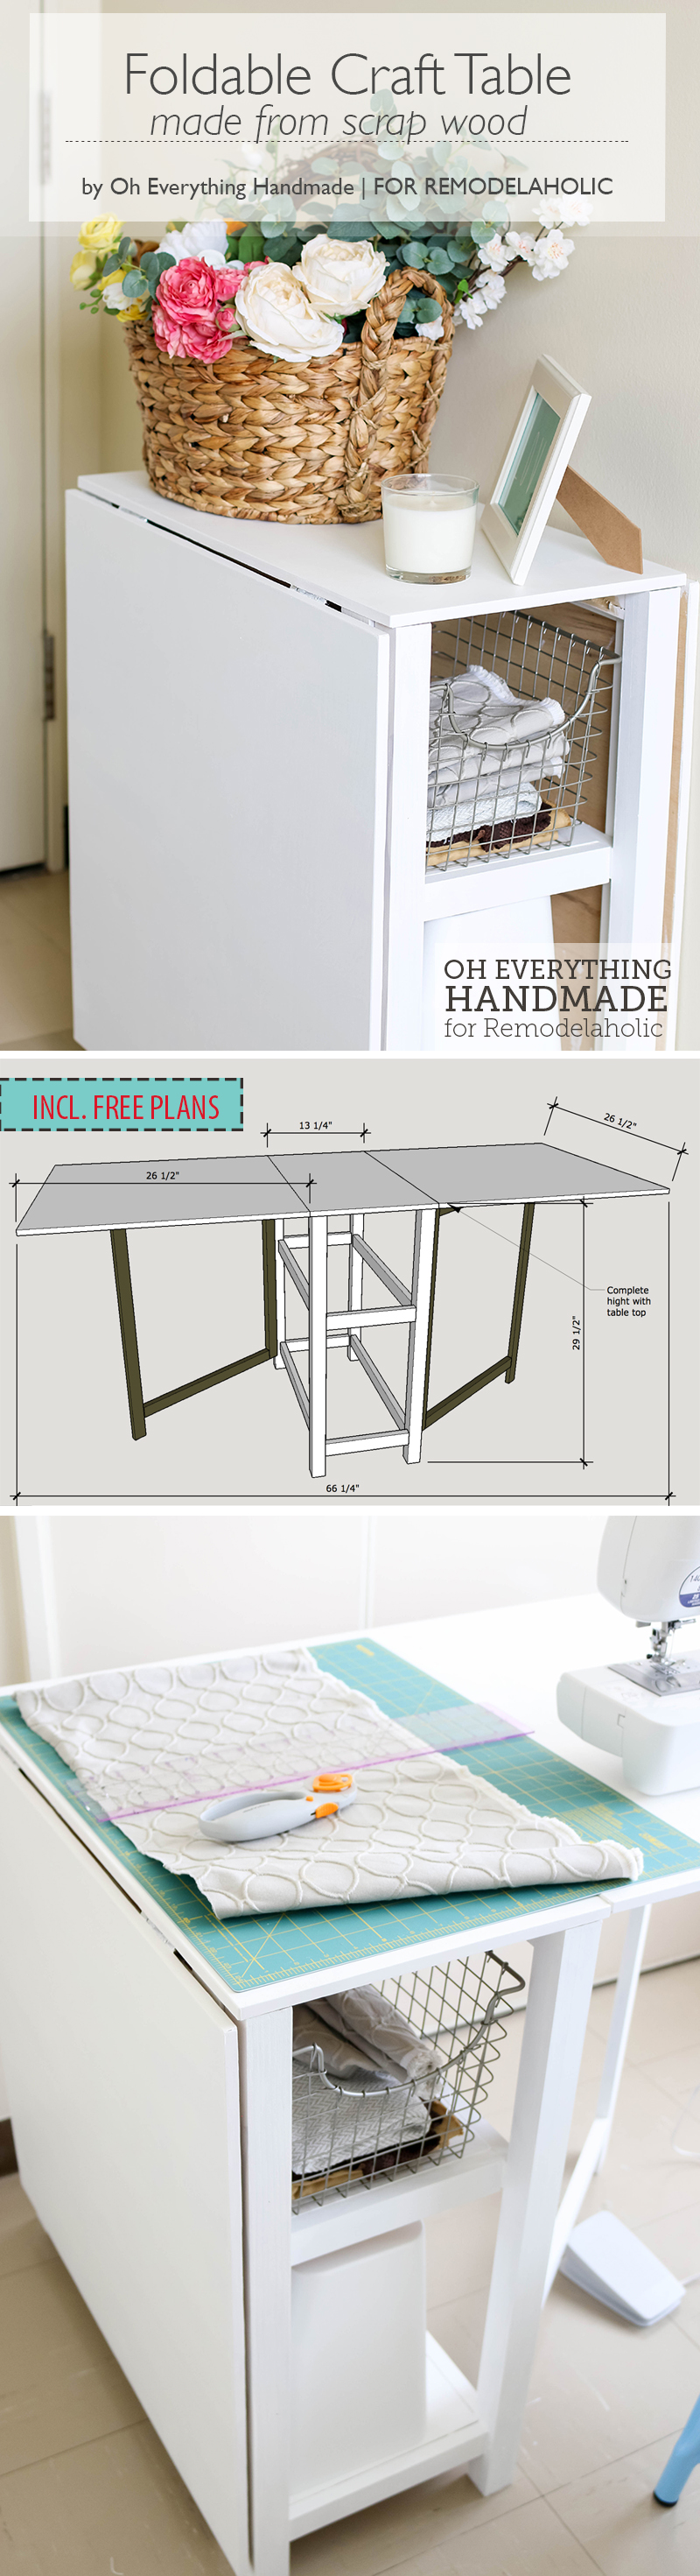 Merveilleux Make Your Small Craft Area Work With This Space Conscious DIY Foldable  Craft Table,